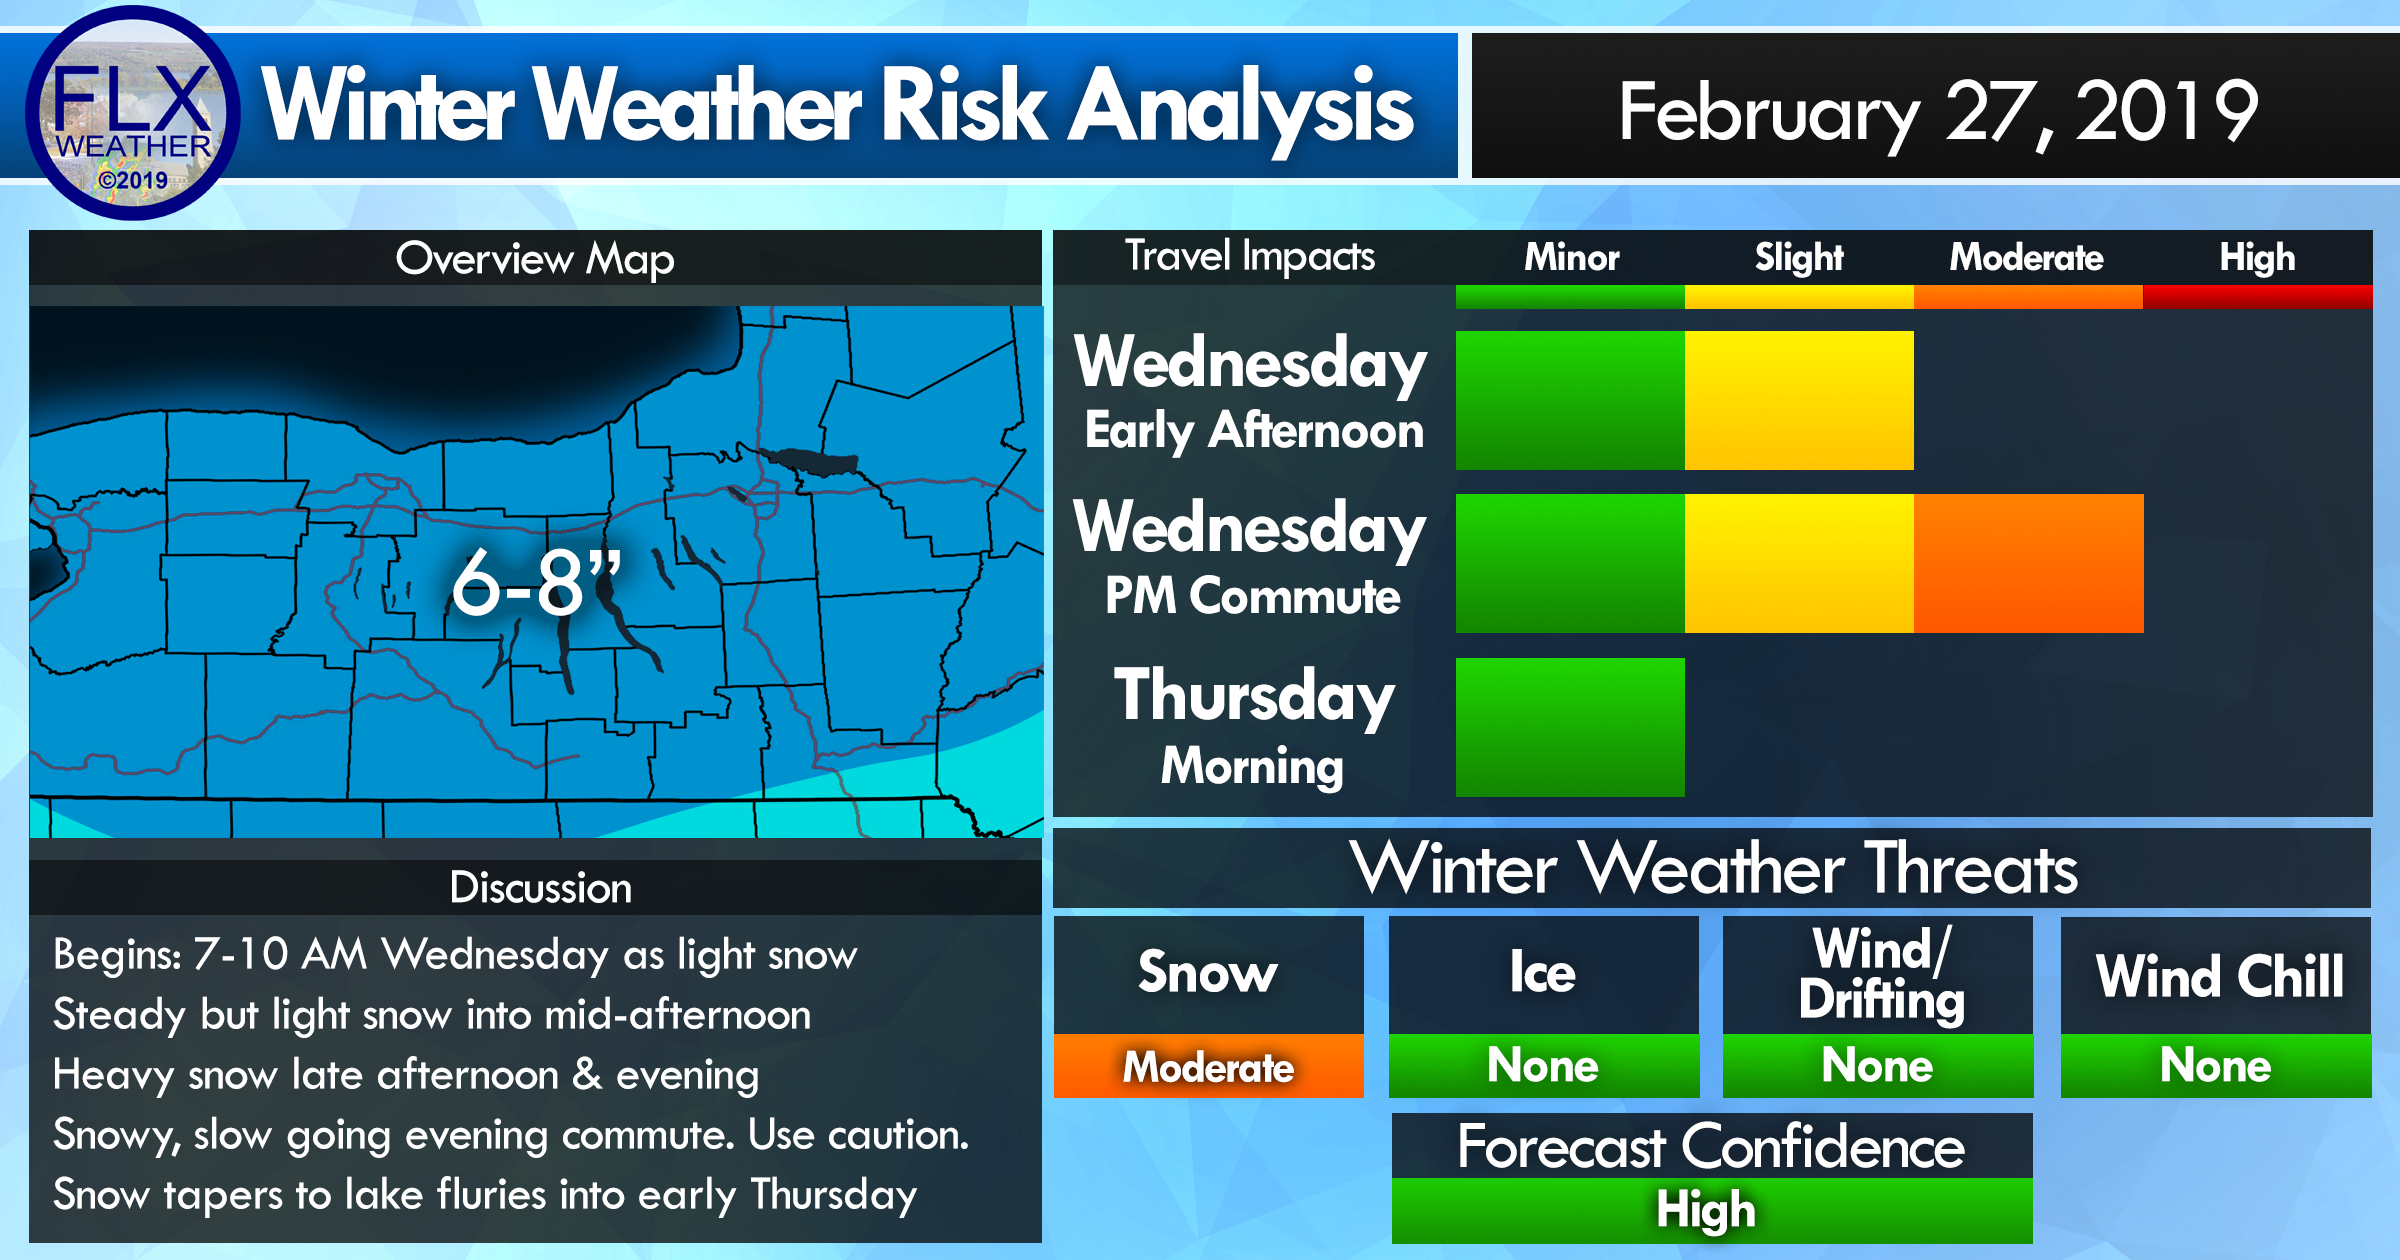 finger lakes weather forecast wednesday february 27 2019 winter storm analysis moderate snow risk